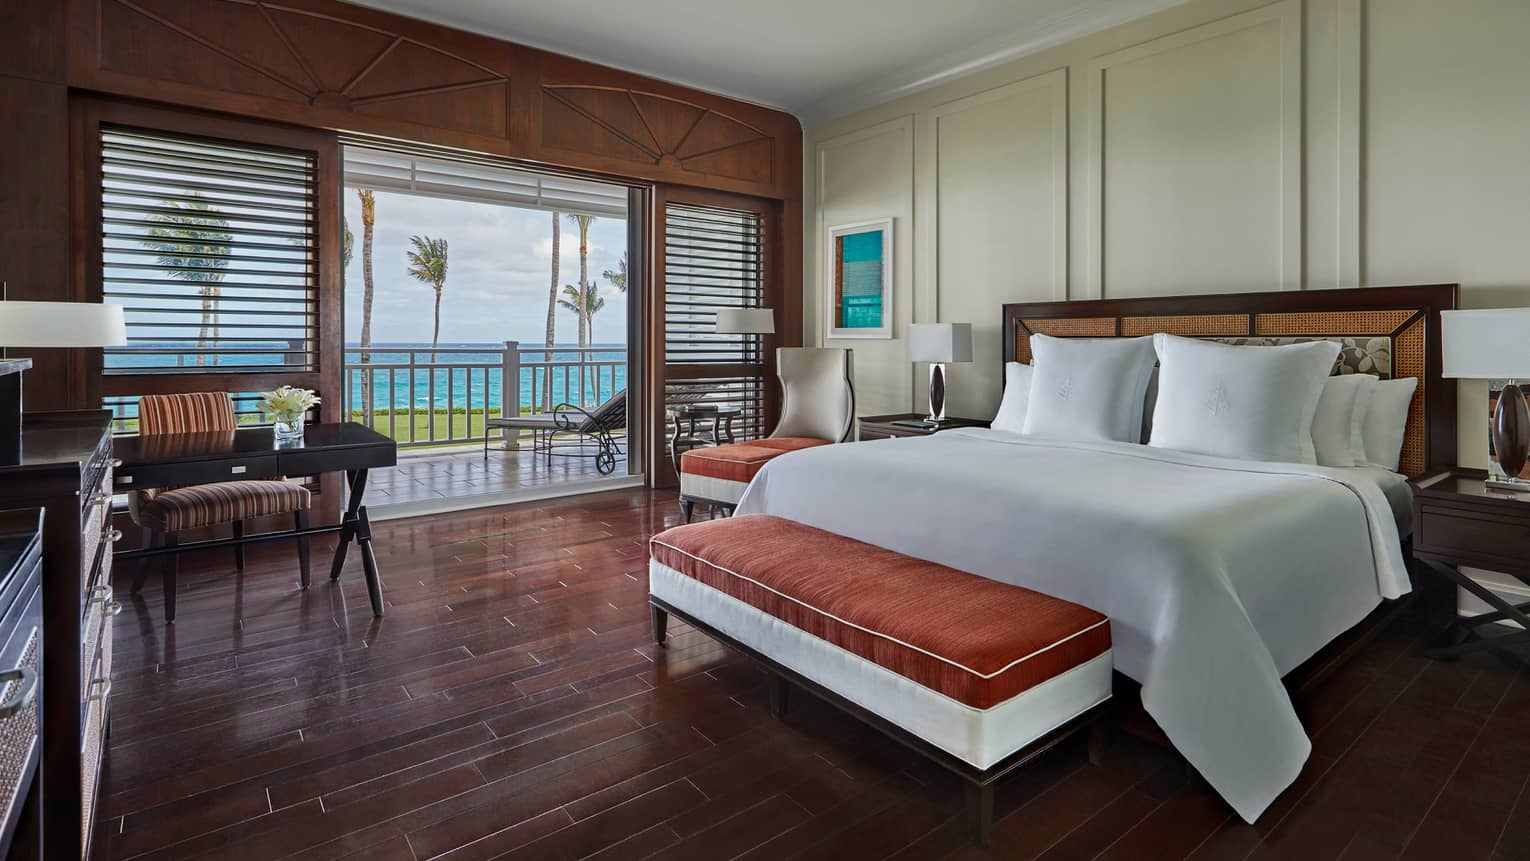 Luxury Beachfront Ocean Room bed, padded bench, desk by patio window, wood shutters